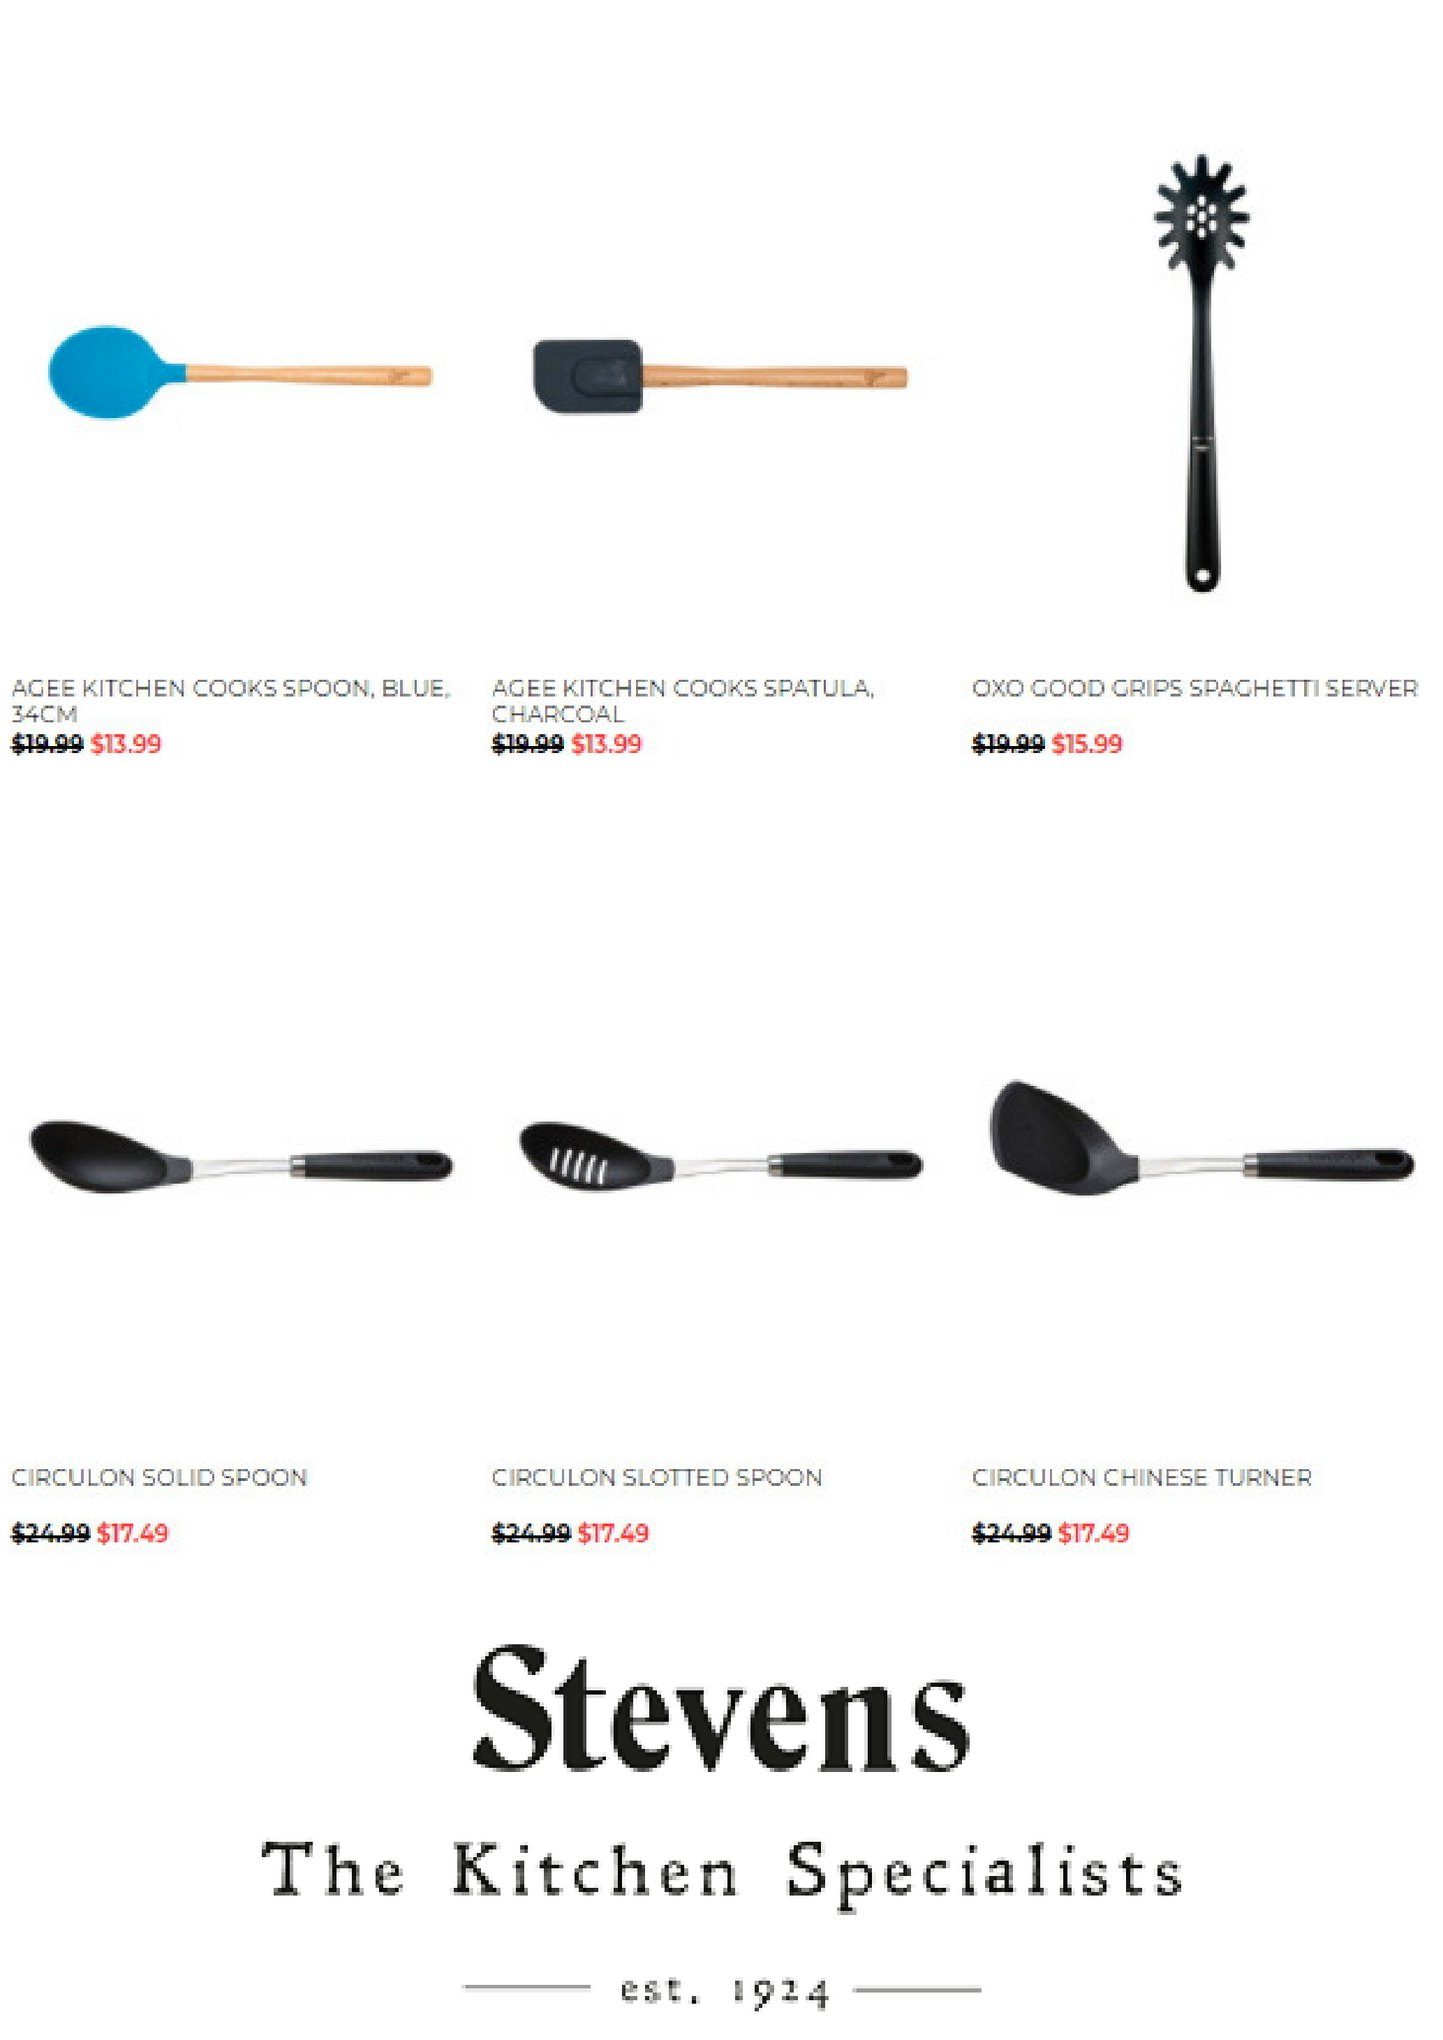 Stevens mailer - 17.03.2018 - 16.05.2018 - Sales products - spatula, spoon, charcoal. Page 5.